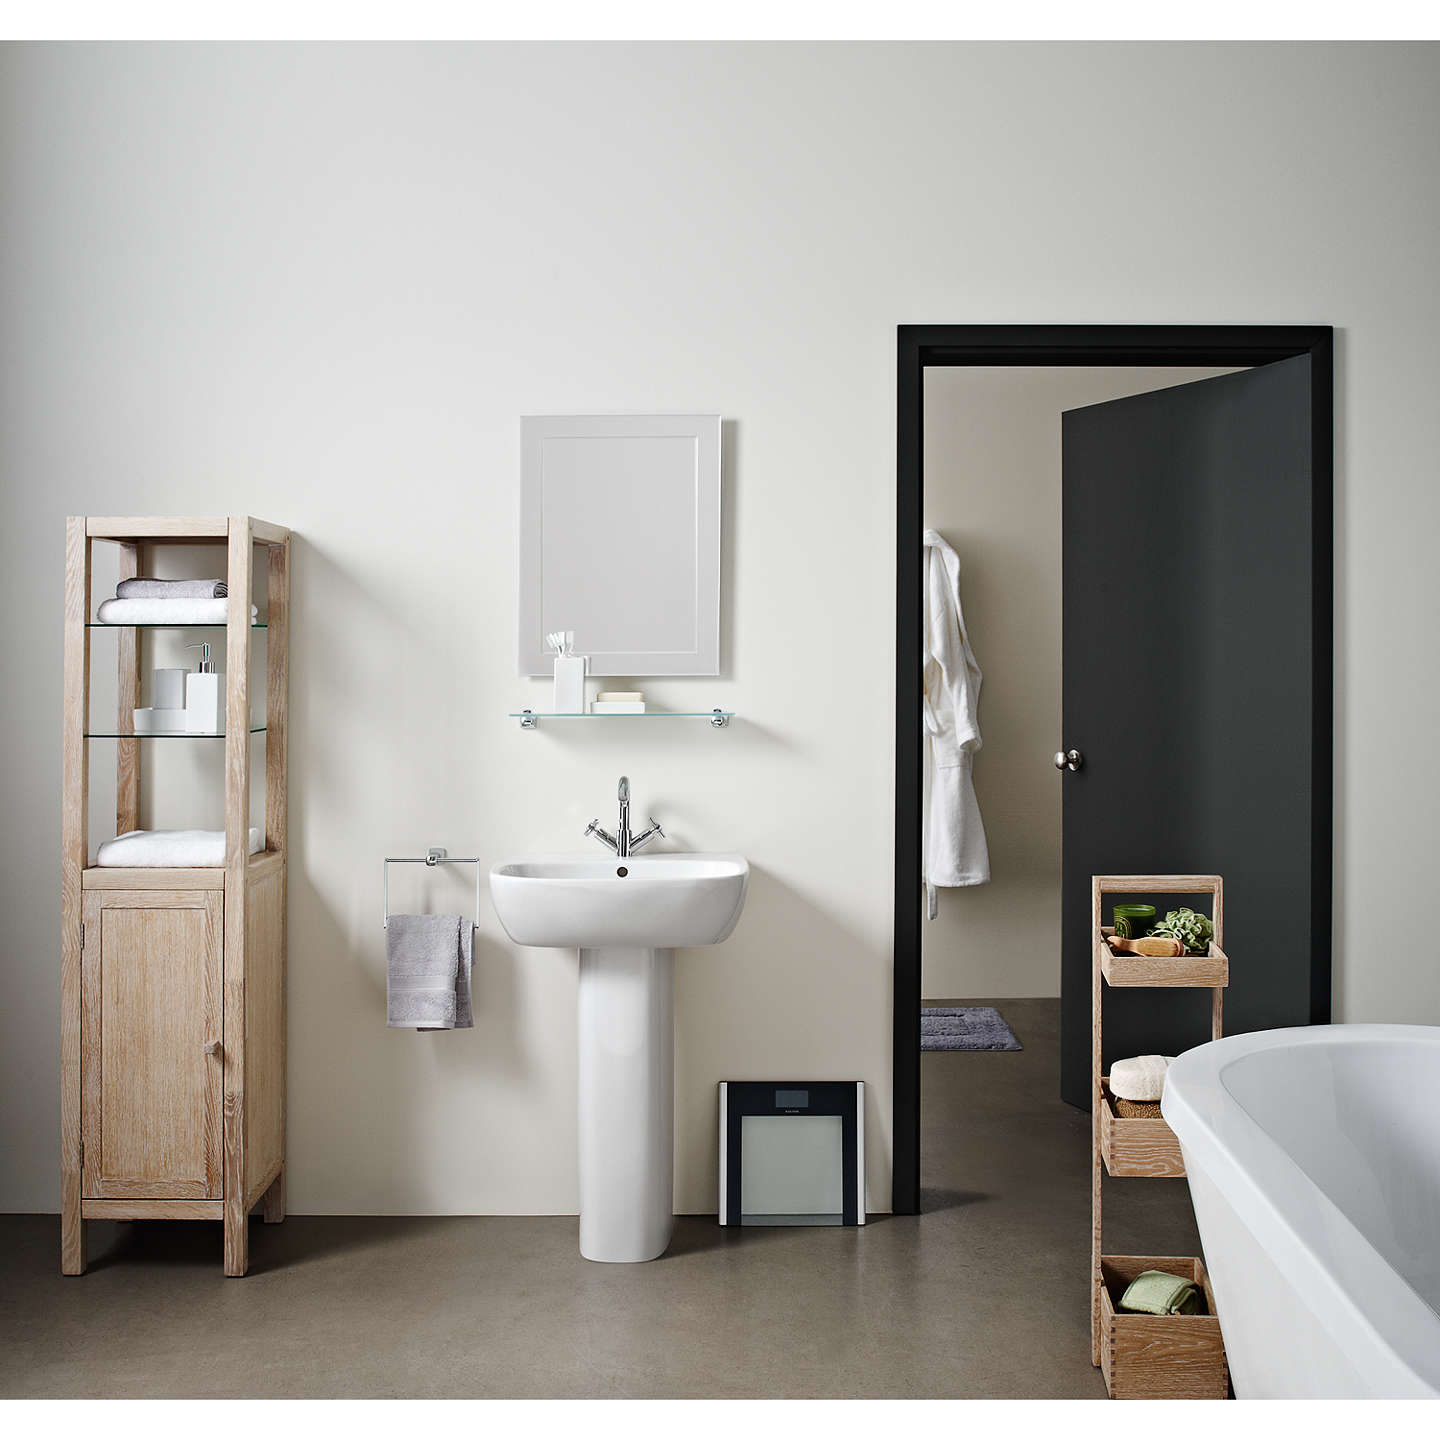 john lewis duo wall bathroom mirror 60 x 45cm at john lewis. Black Bedroom Furniture Sets. Home Design Ideas